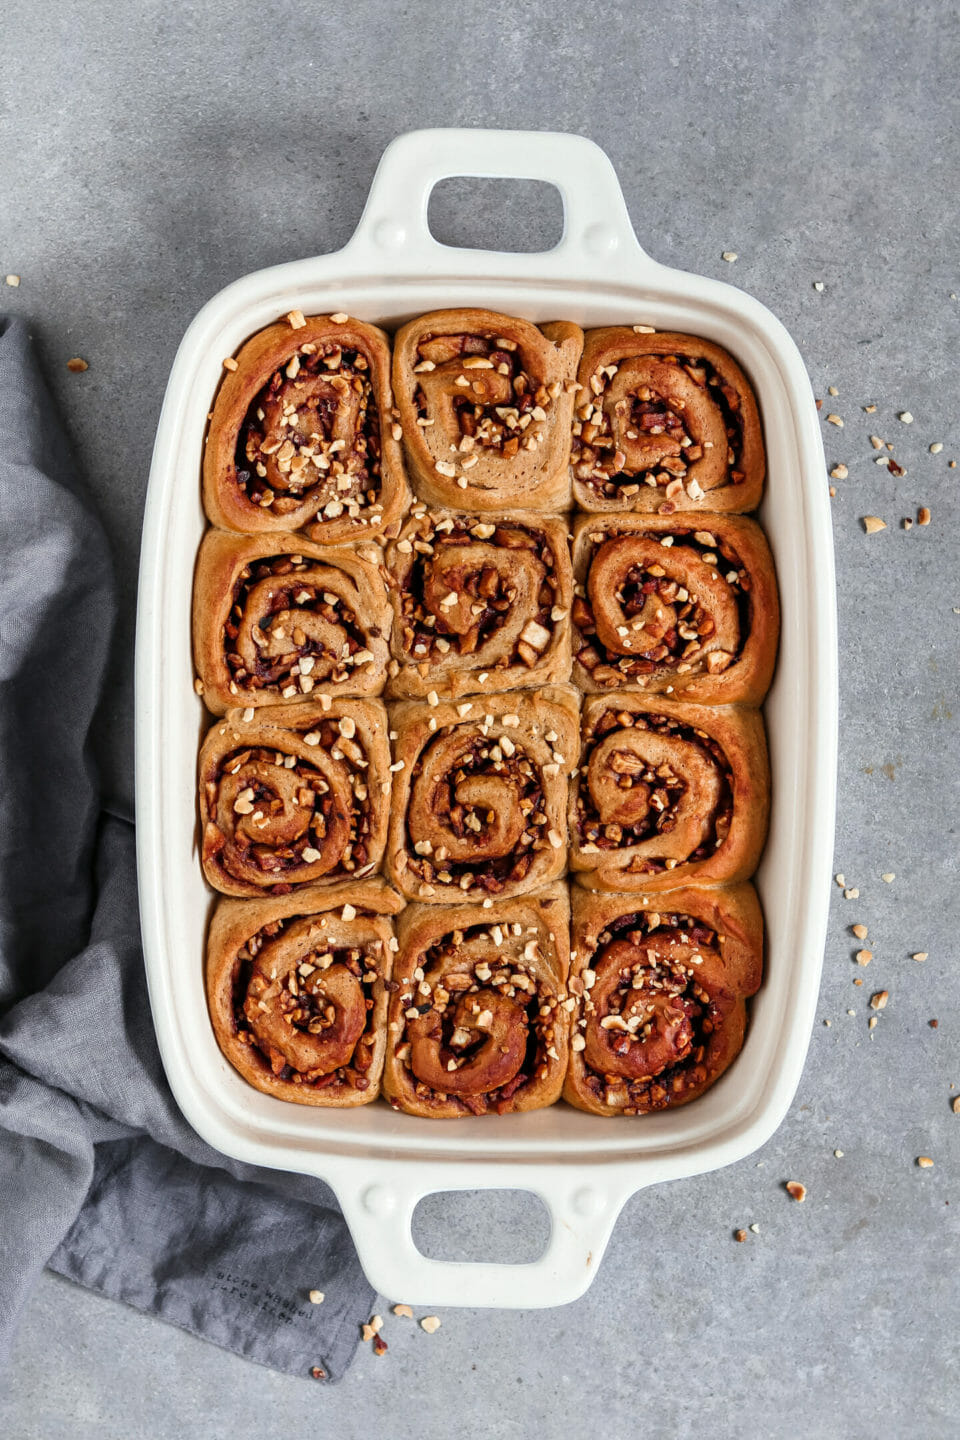 Vegan cinnamon buns with a sweet apple nut filling served in a baking form.